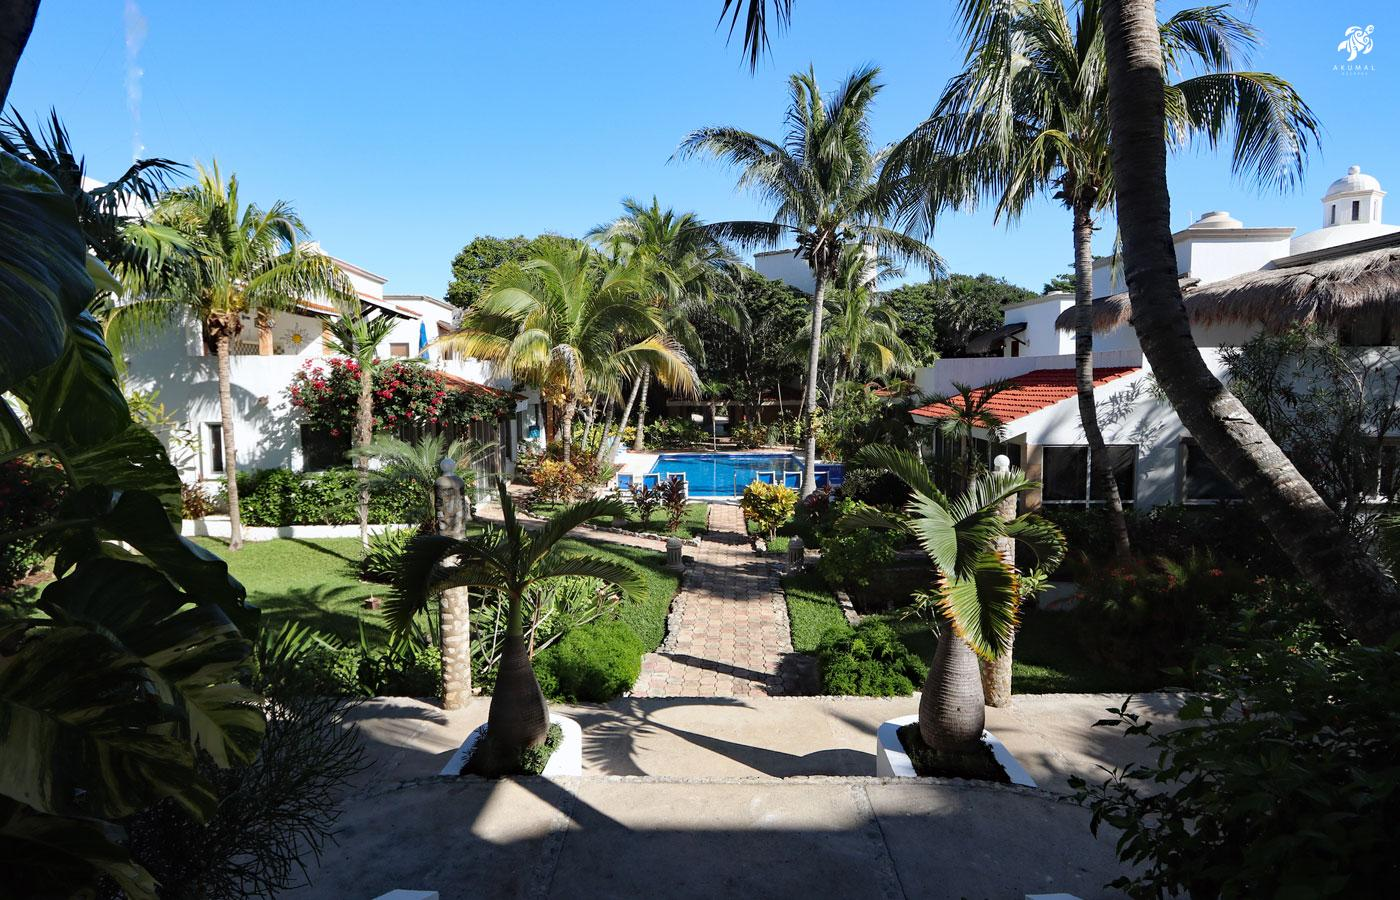 Looking from the beach paseo to our gardens and pool